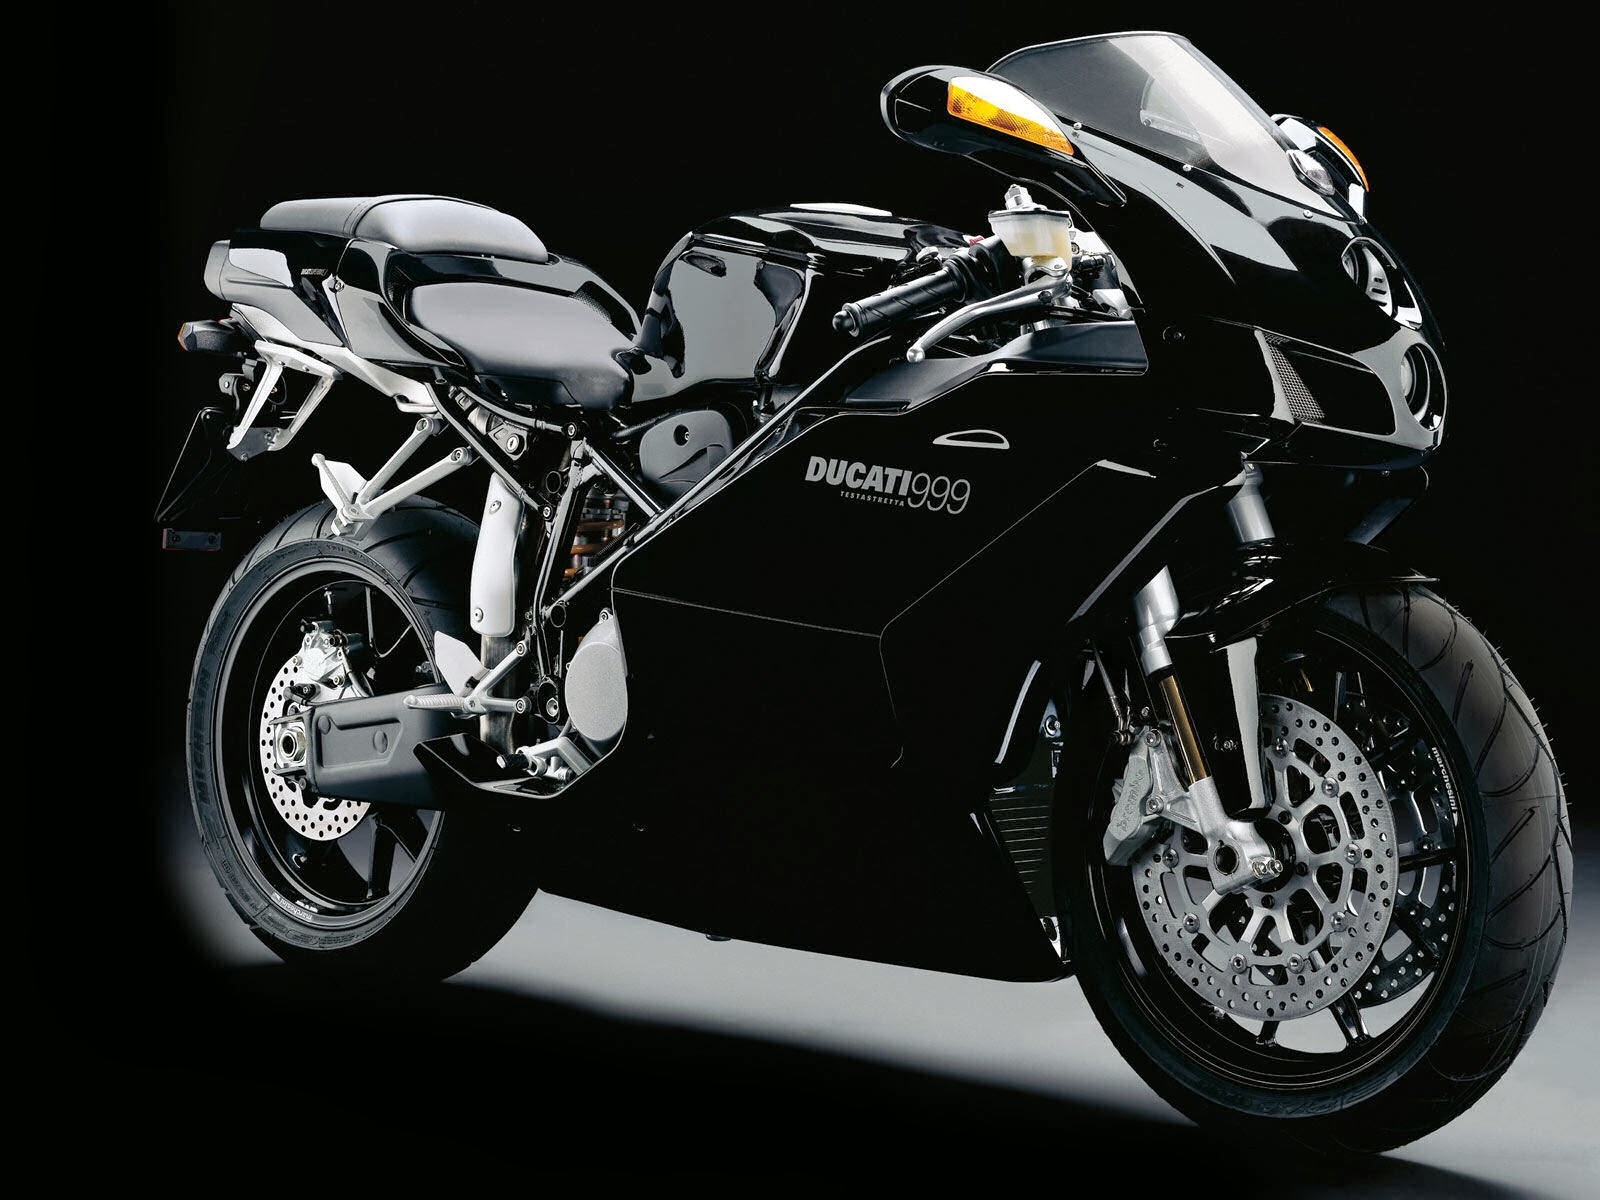 Hd Wallpapers Of Bikes For: HD Bike Wallpapers 1080p